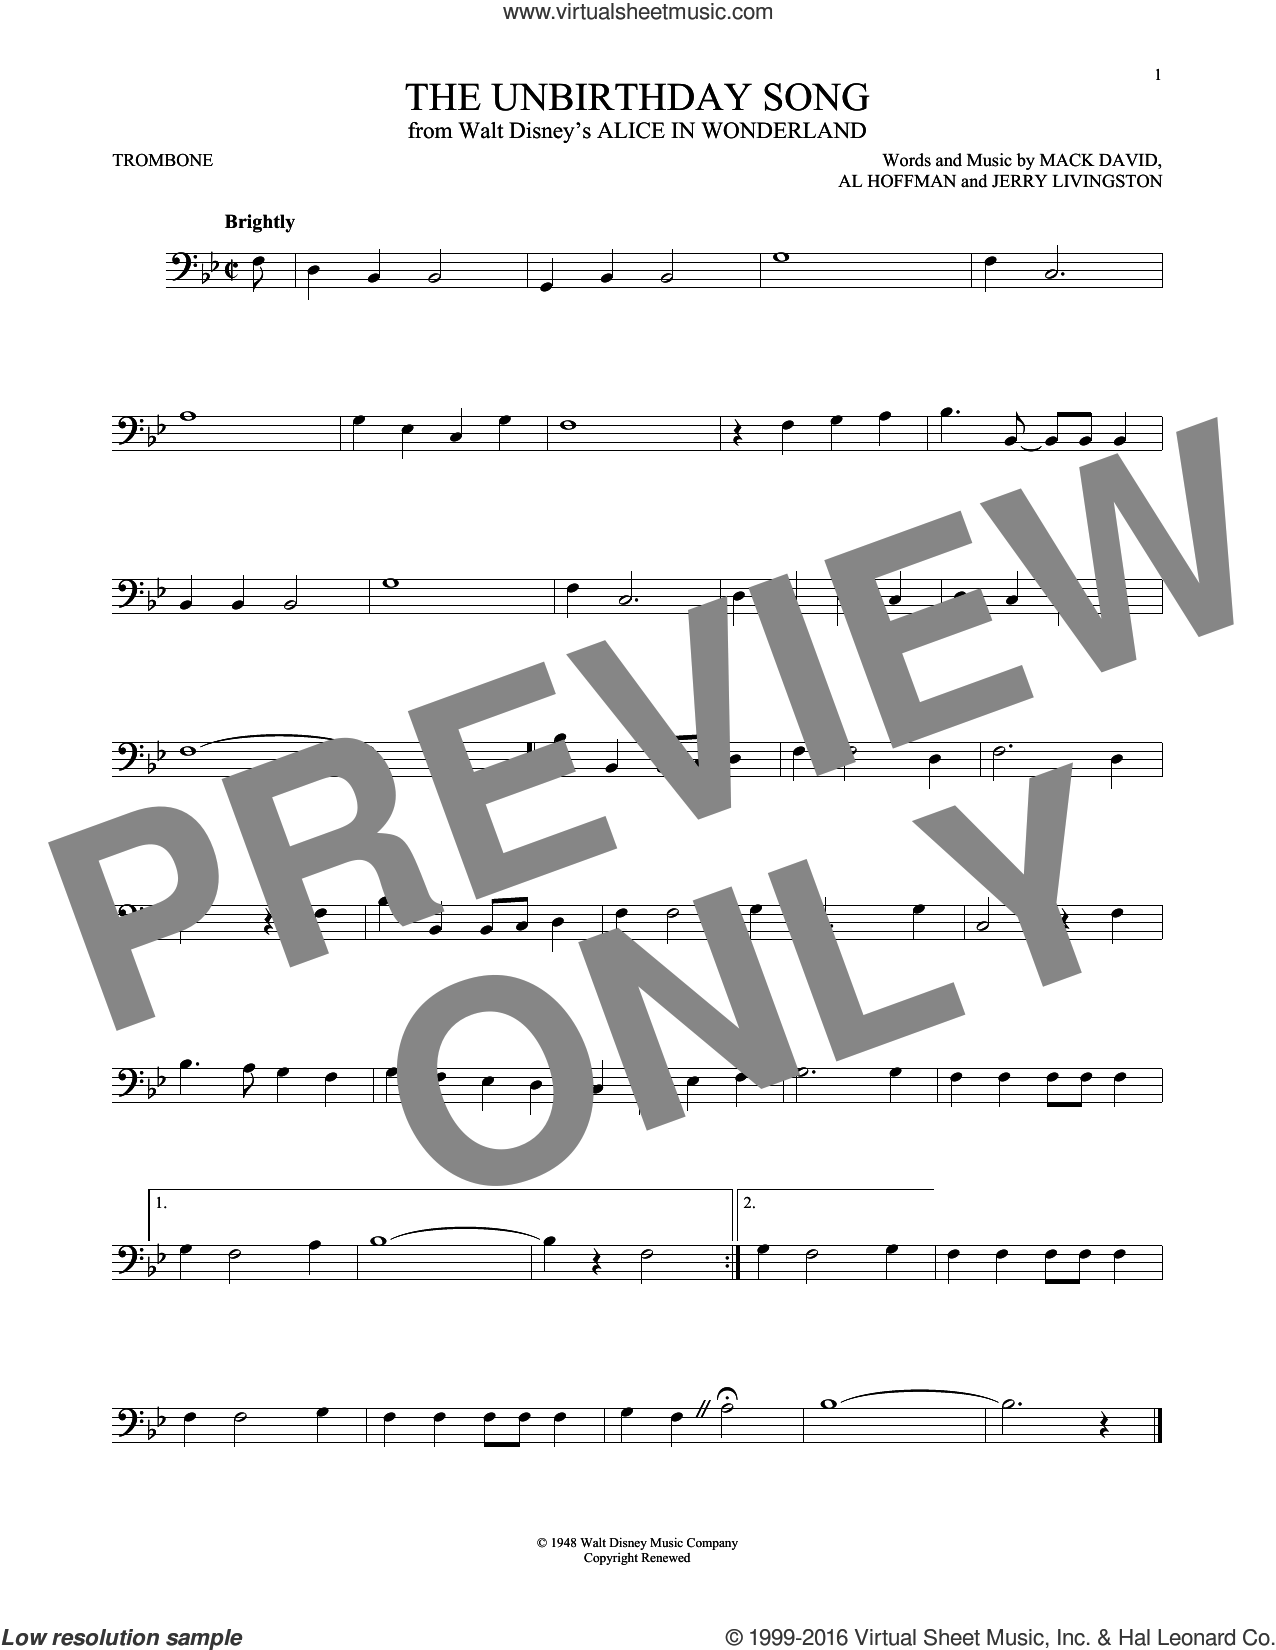 The Unbirthday Song sheet music for trombone solo by Al Hoffman, Jerry Livingston, Mack David and Mack David, Al Hoffman and Jerry Livingston, intermediate skill level